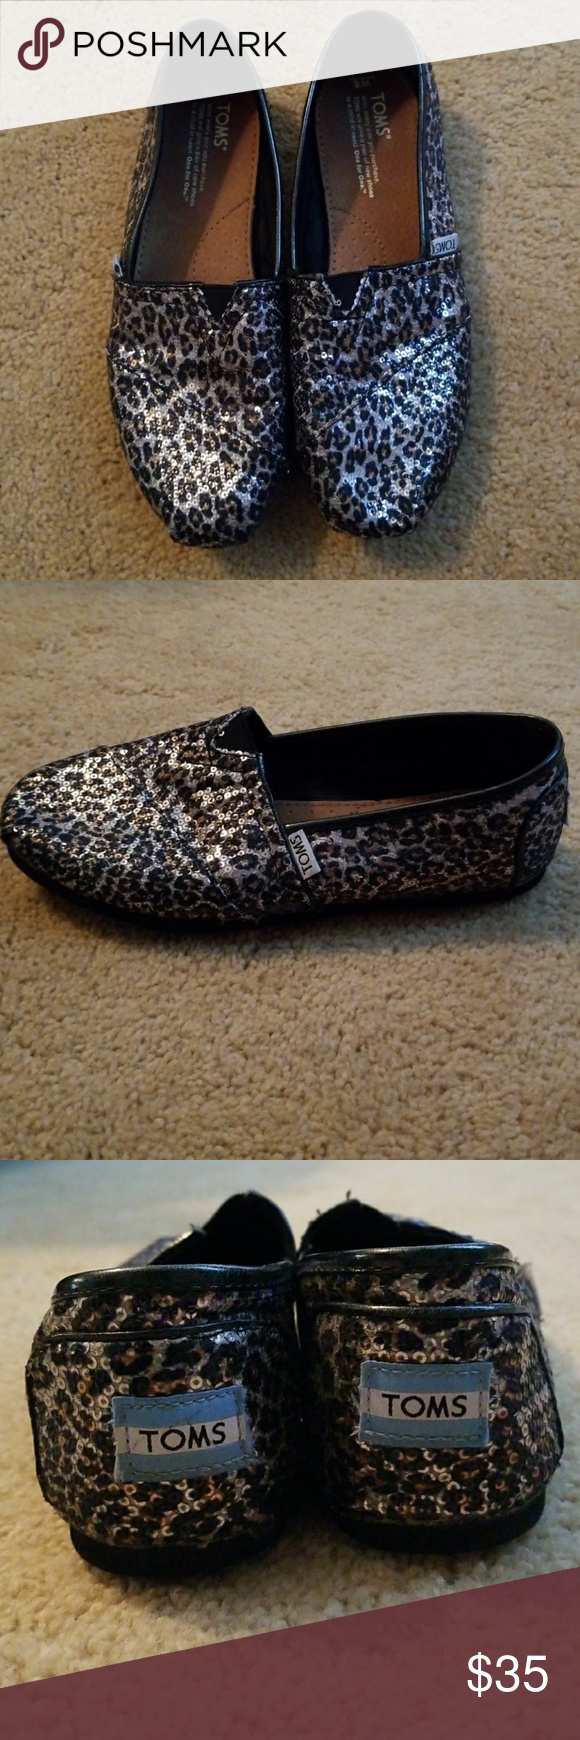 9025be951306 Toms (Nordstrom exclusive) Sequin leopard print Toms exclusively sold at  Nordstrom. Comfortable and only worn a few times. Toms Shoes Flats & Loafers